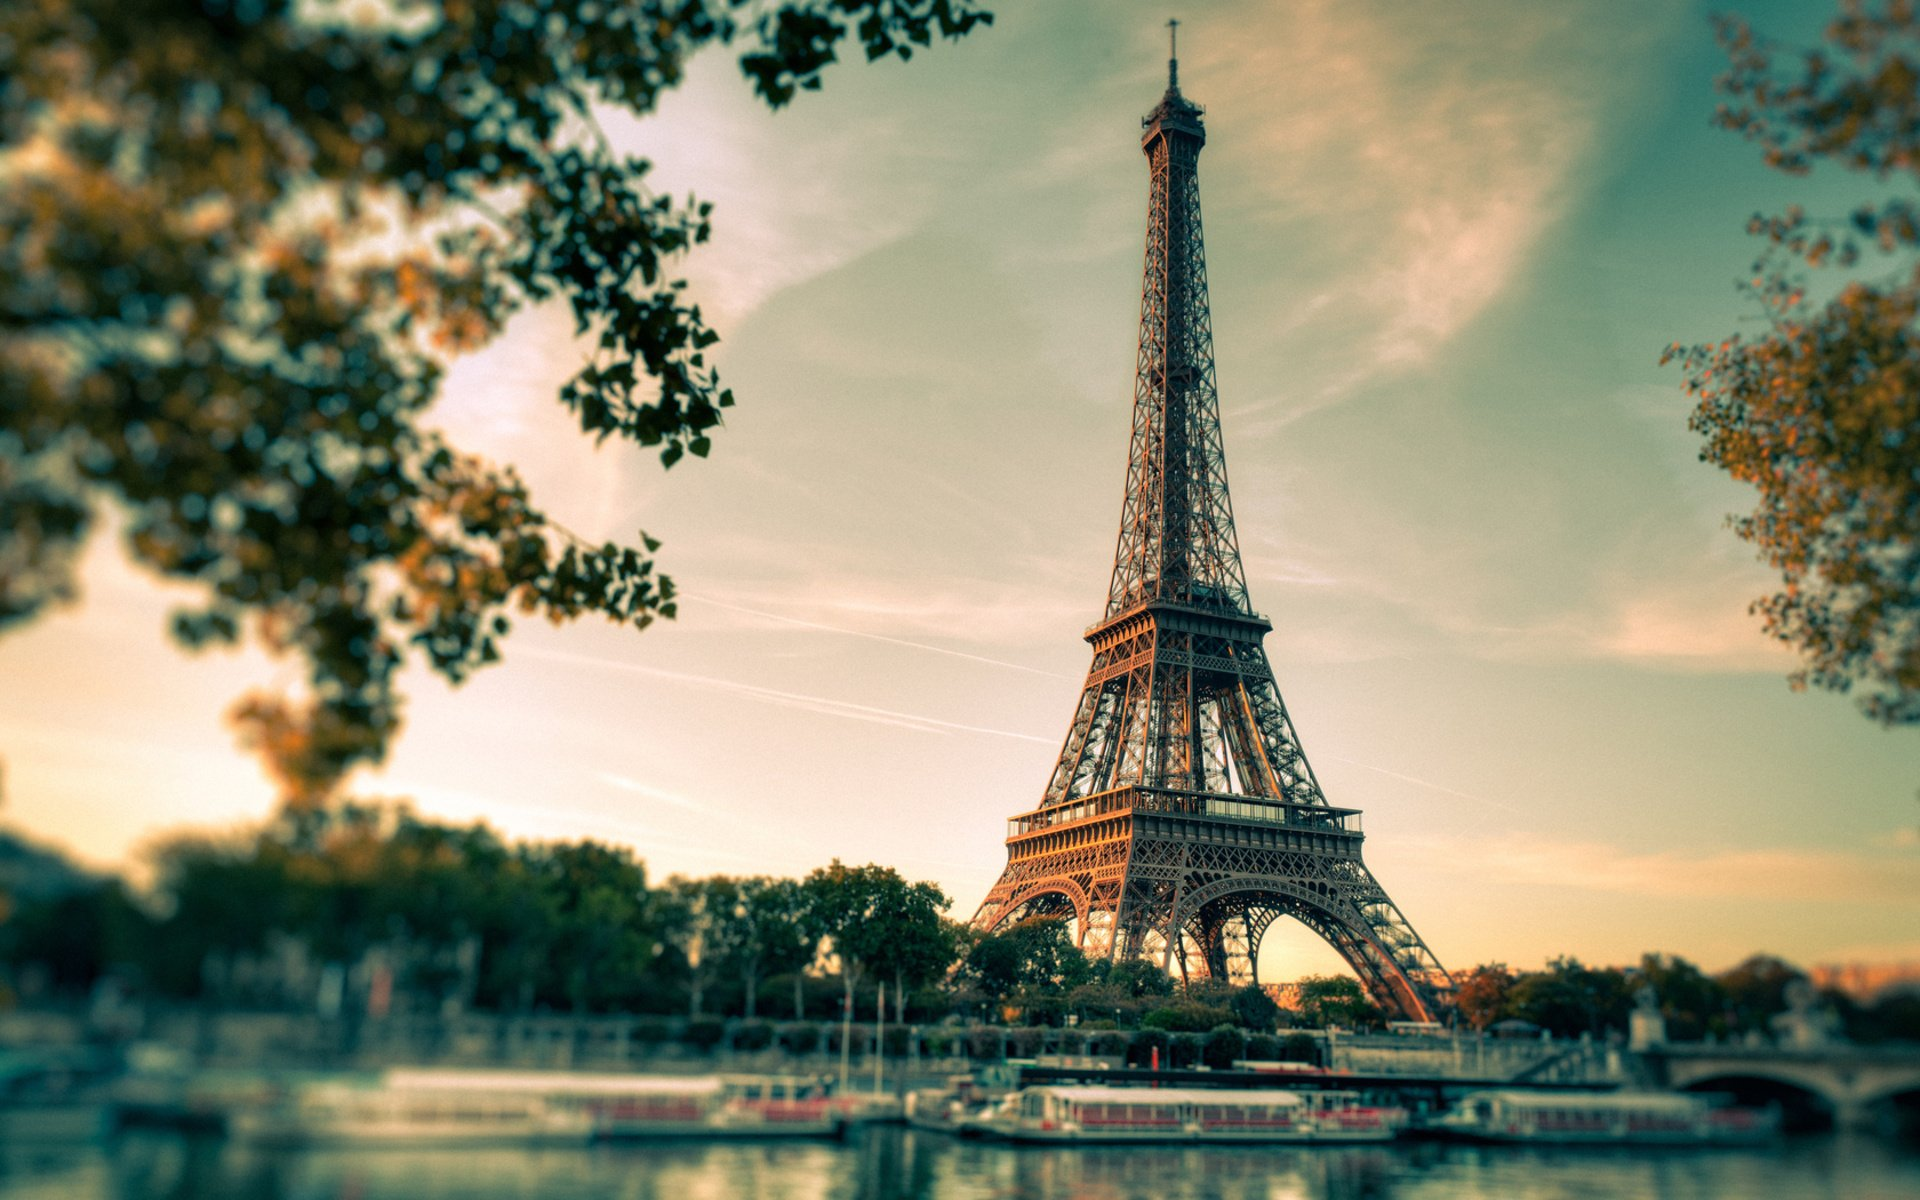 Eiffel Tower Hd Wallpaper Background Image 1920x1200 Id 284379